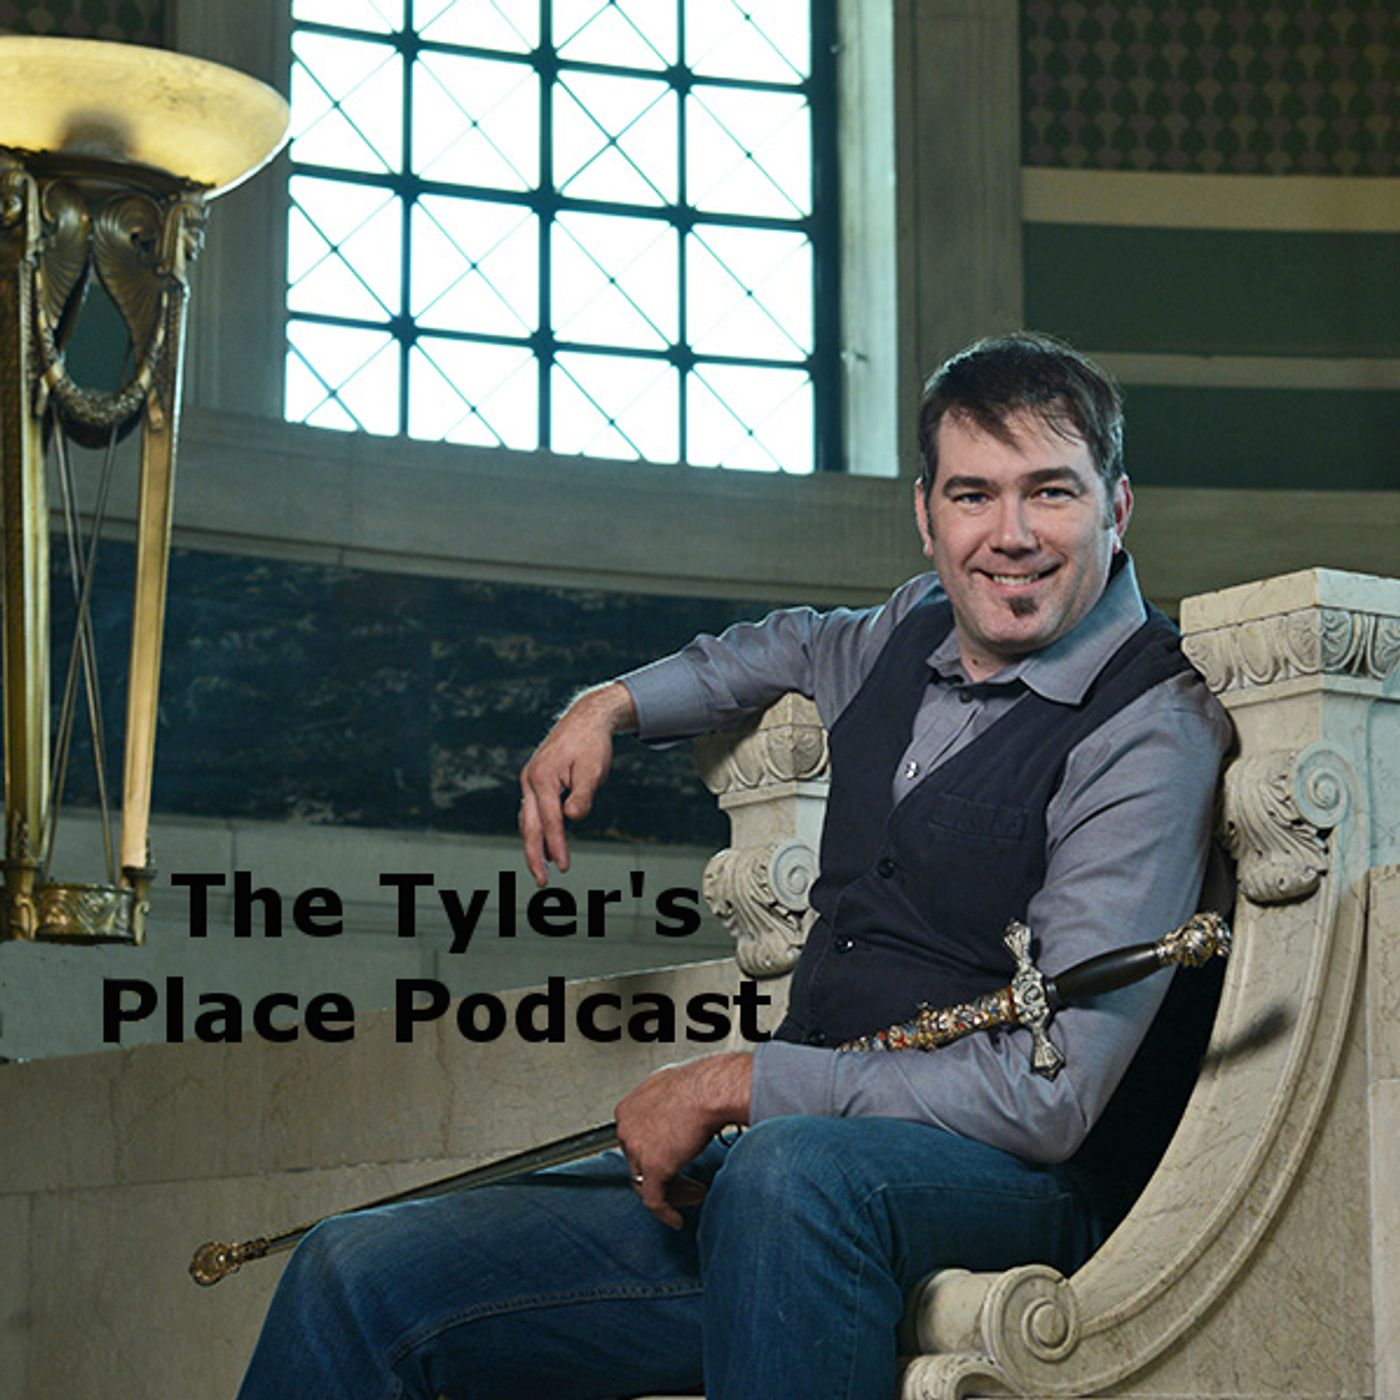 Tyler's Place Podcast